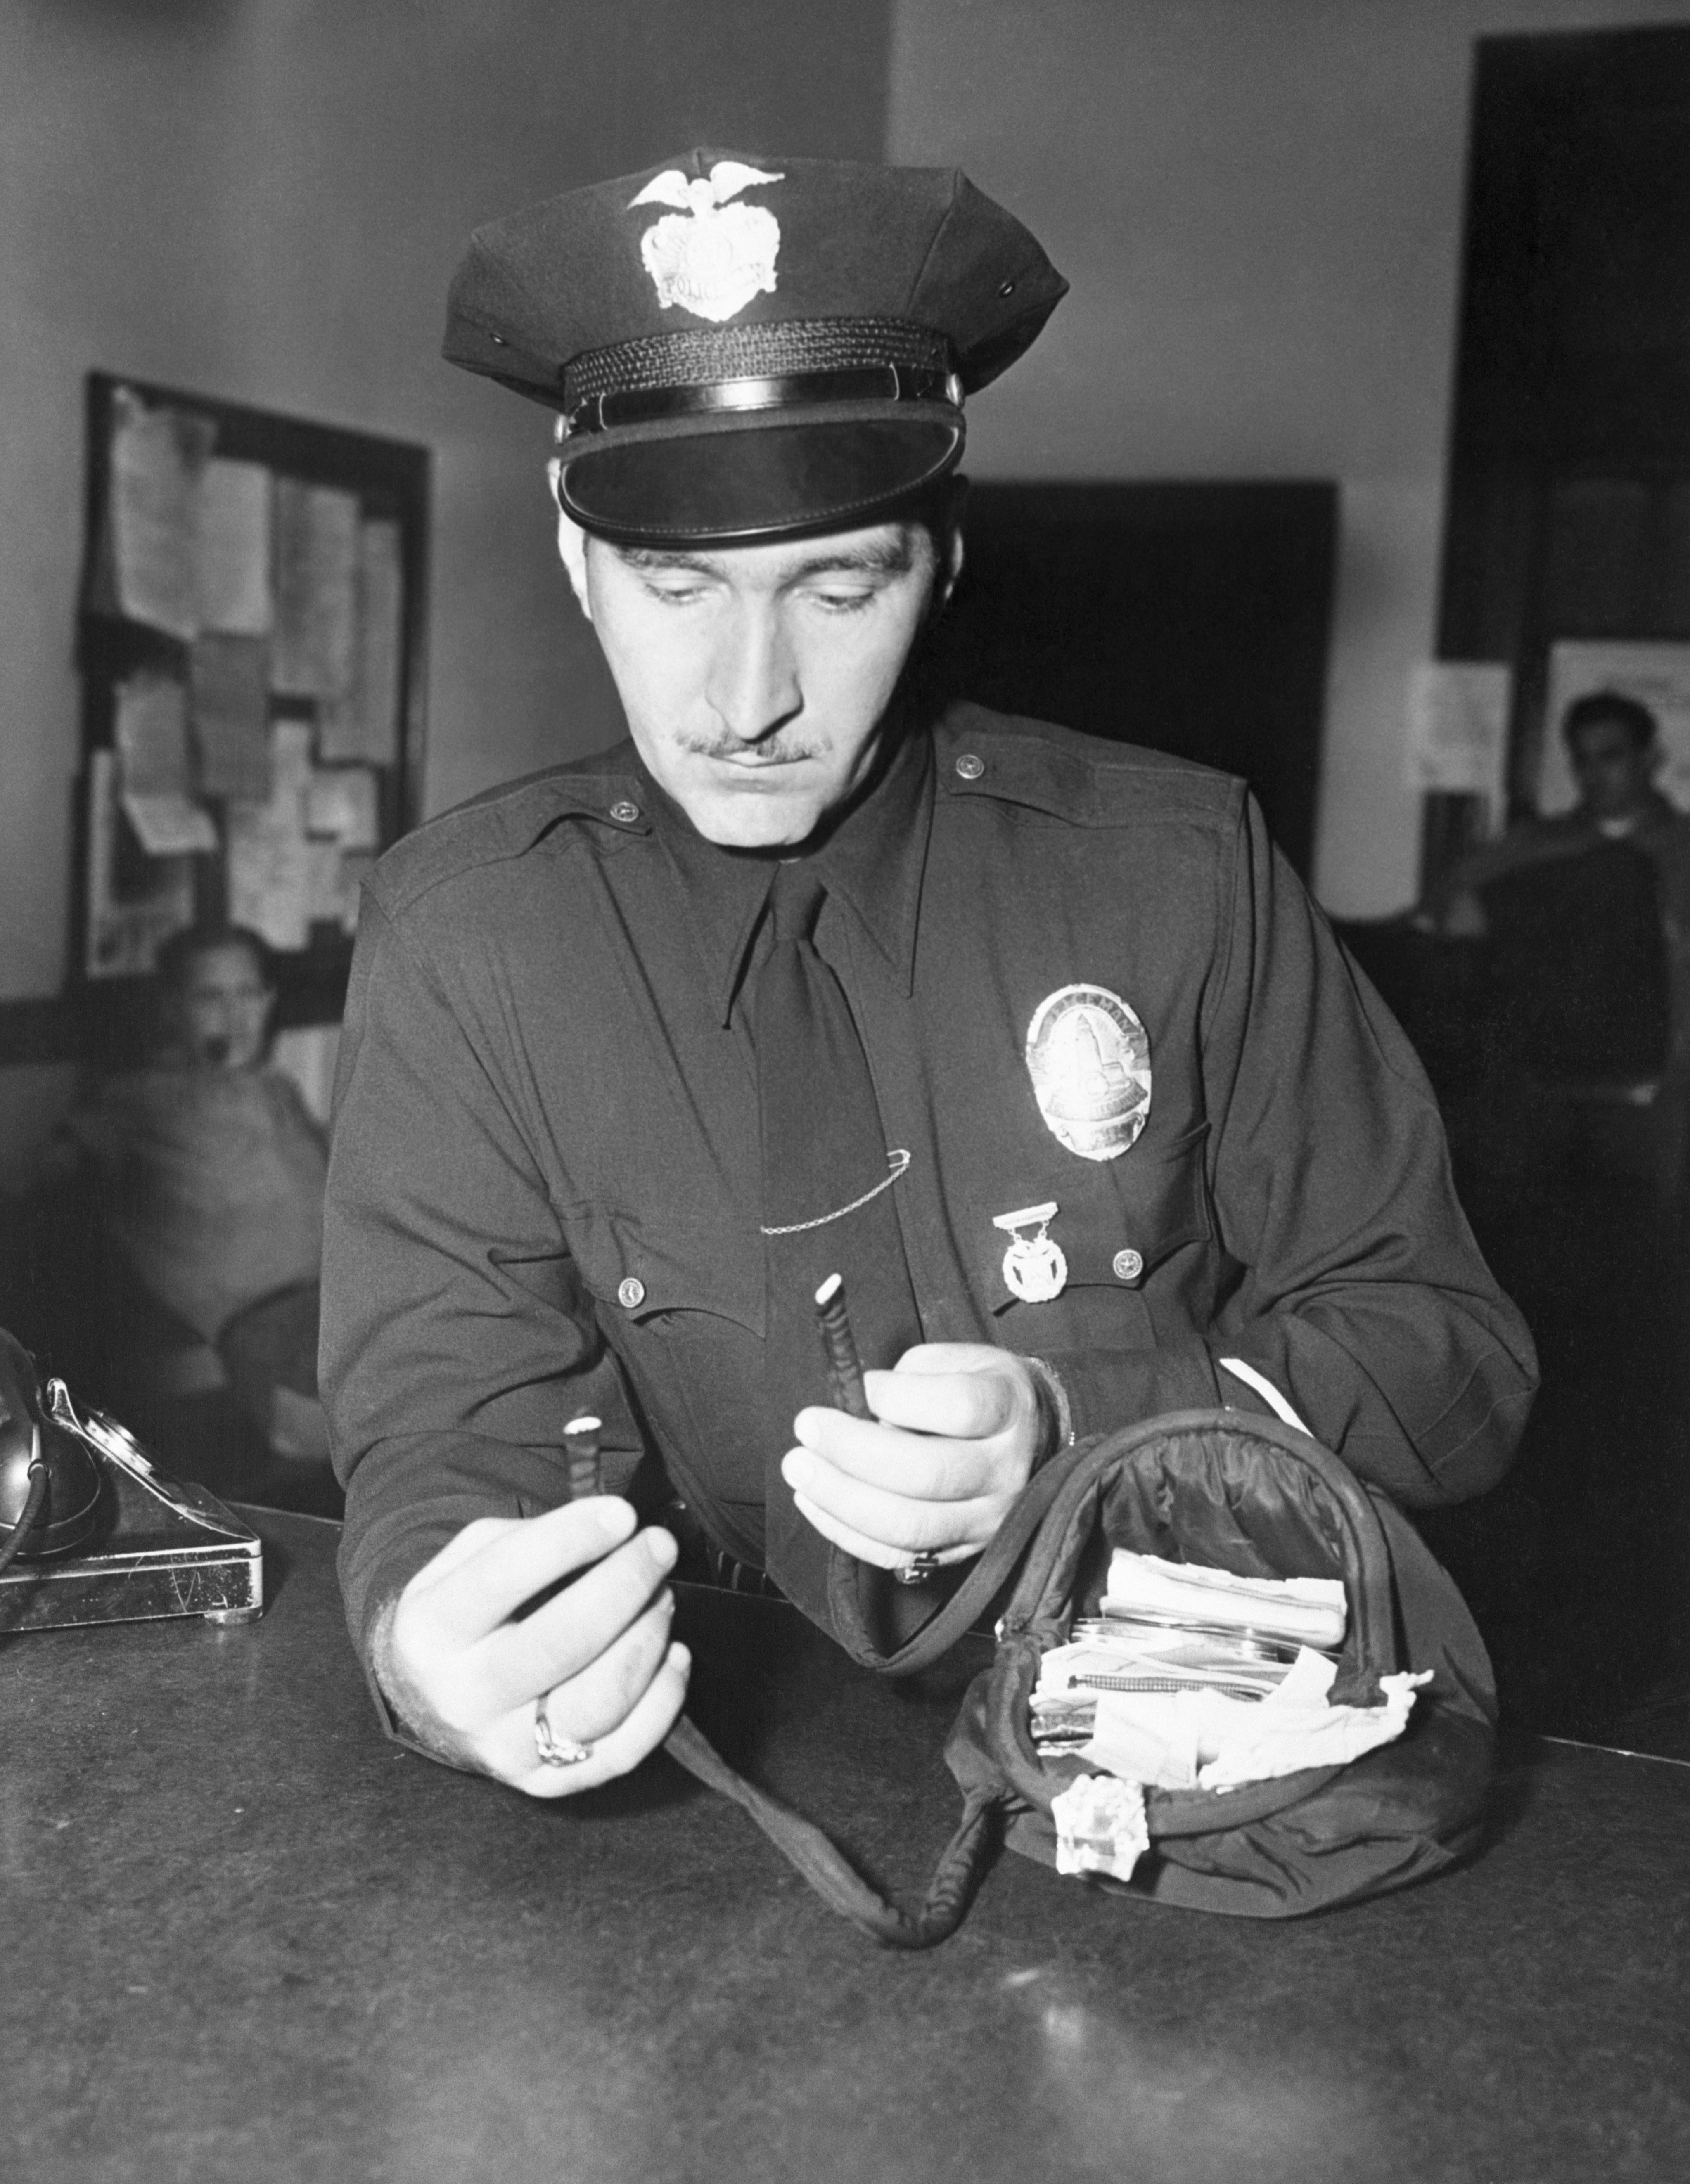 Officer Howard Rose holding Jean Spangler's damaged purse, which was taken in as evidence, 1949 | Photo: Getty Images